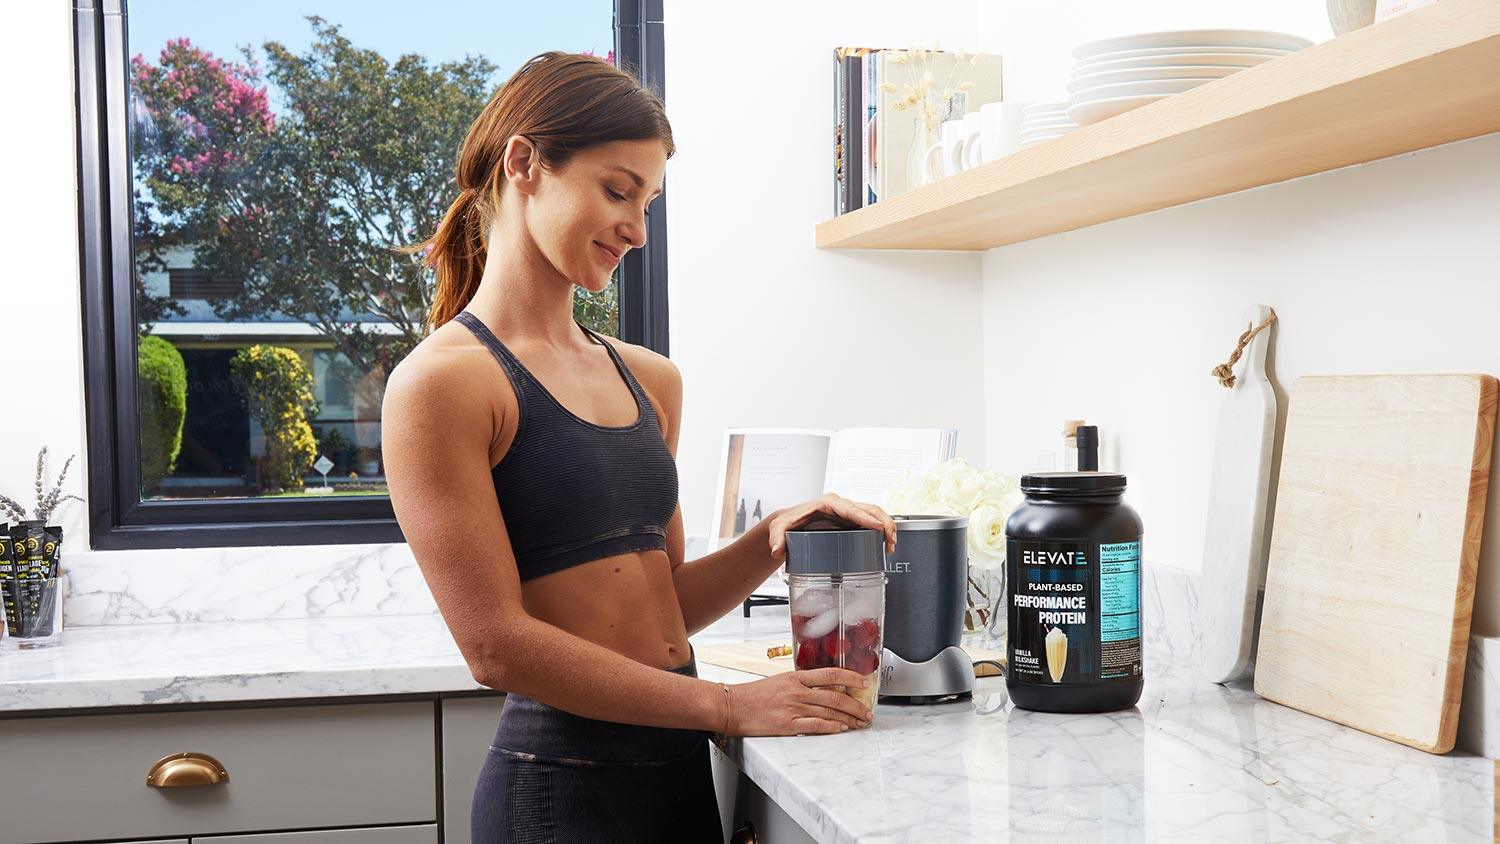 Woman Making Elevate Nutrition Protein Shake With Nutribullet